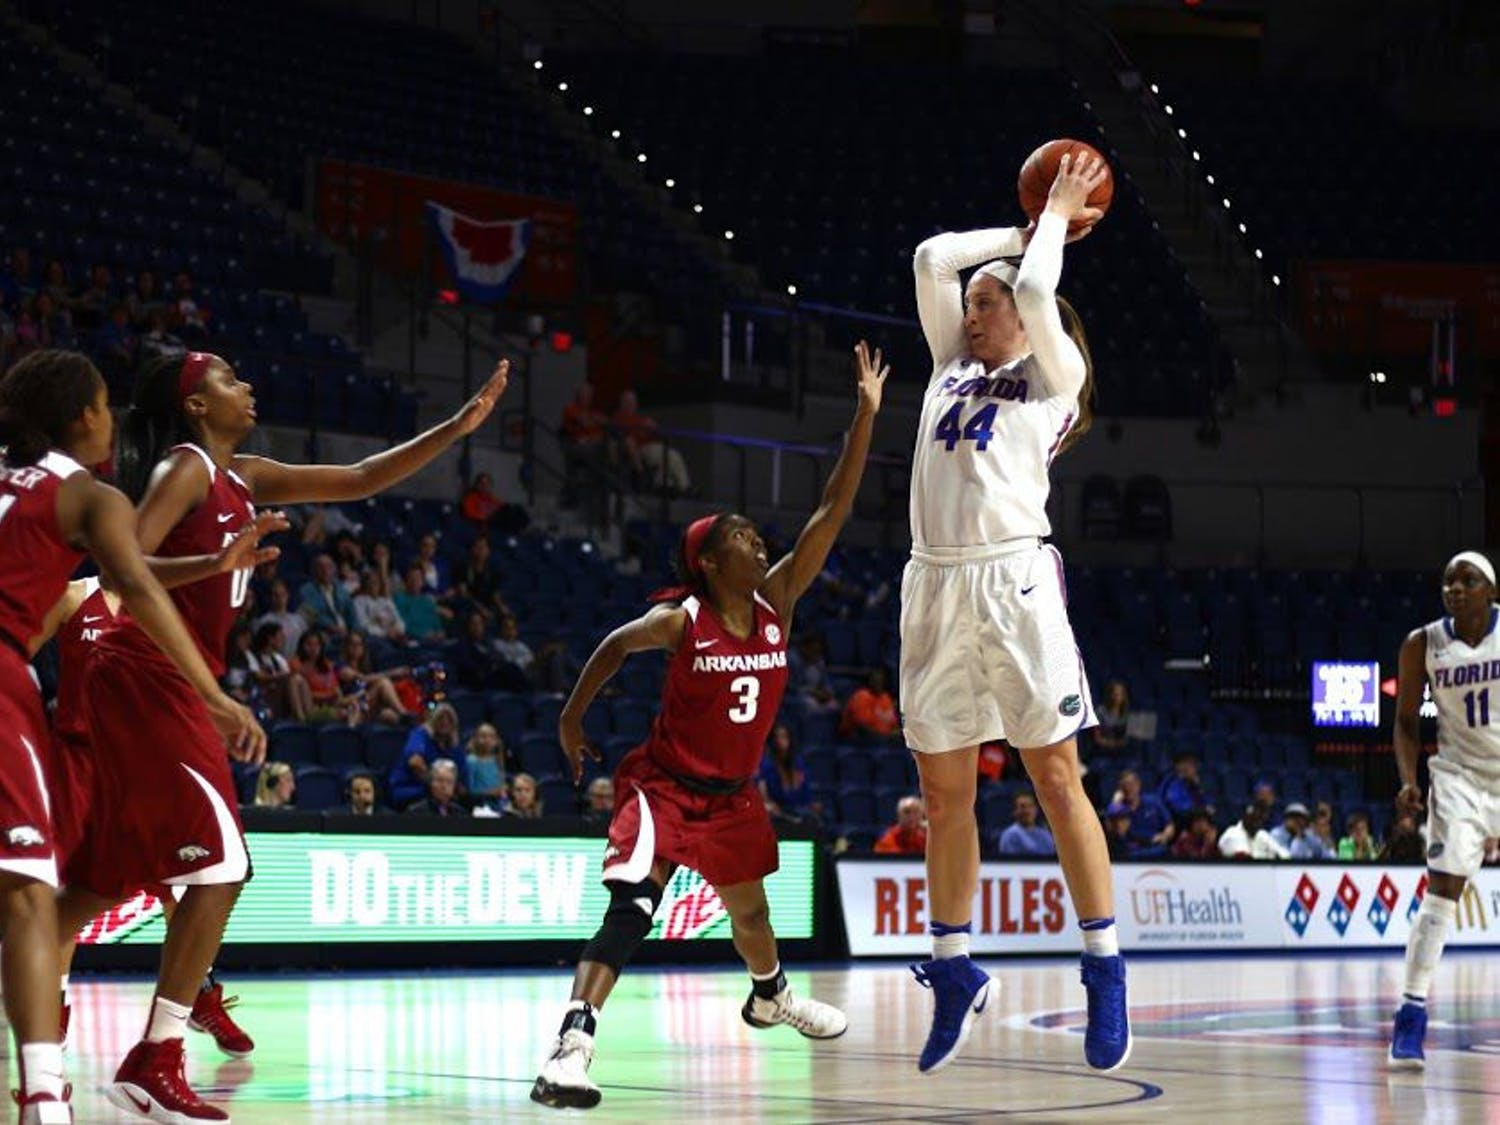 UF forward Haley Lorenzen attempts a jump shot during Florida's 57-53 win against Arkansas on Feb. 9, 2017, in the O'Connell Center.